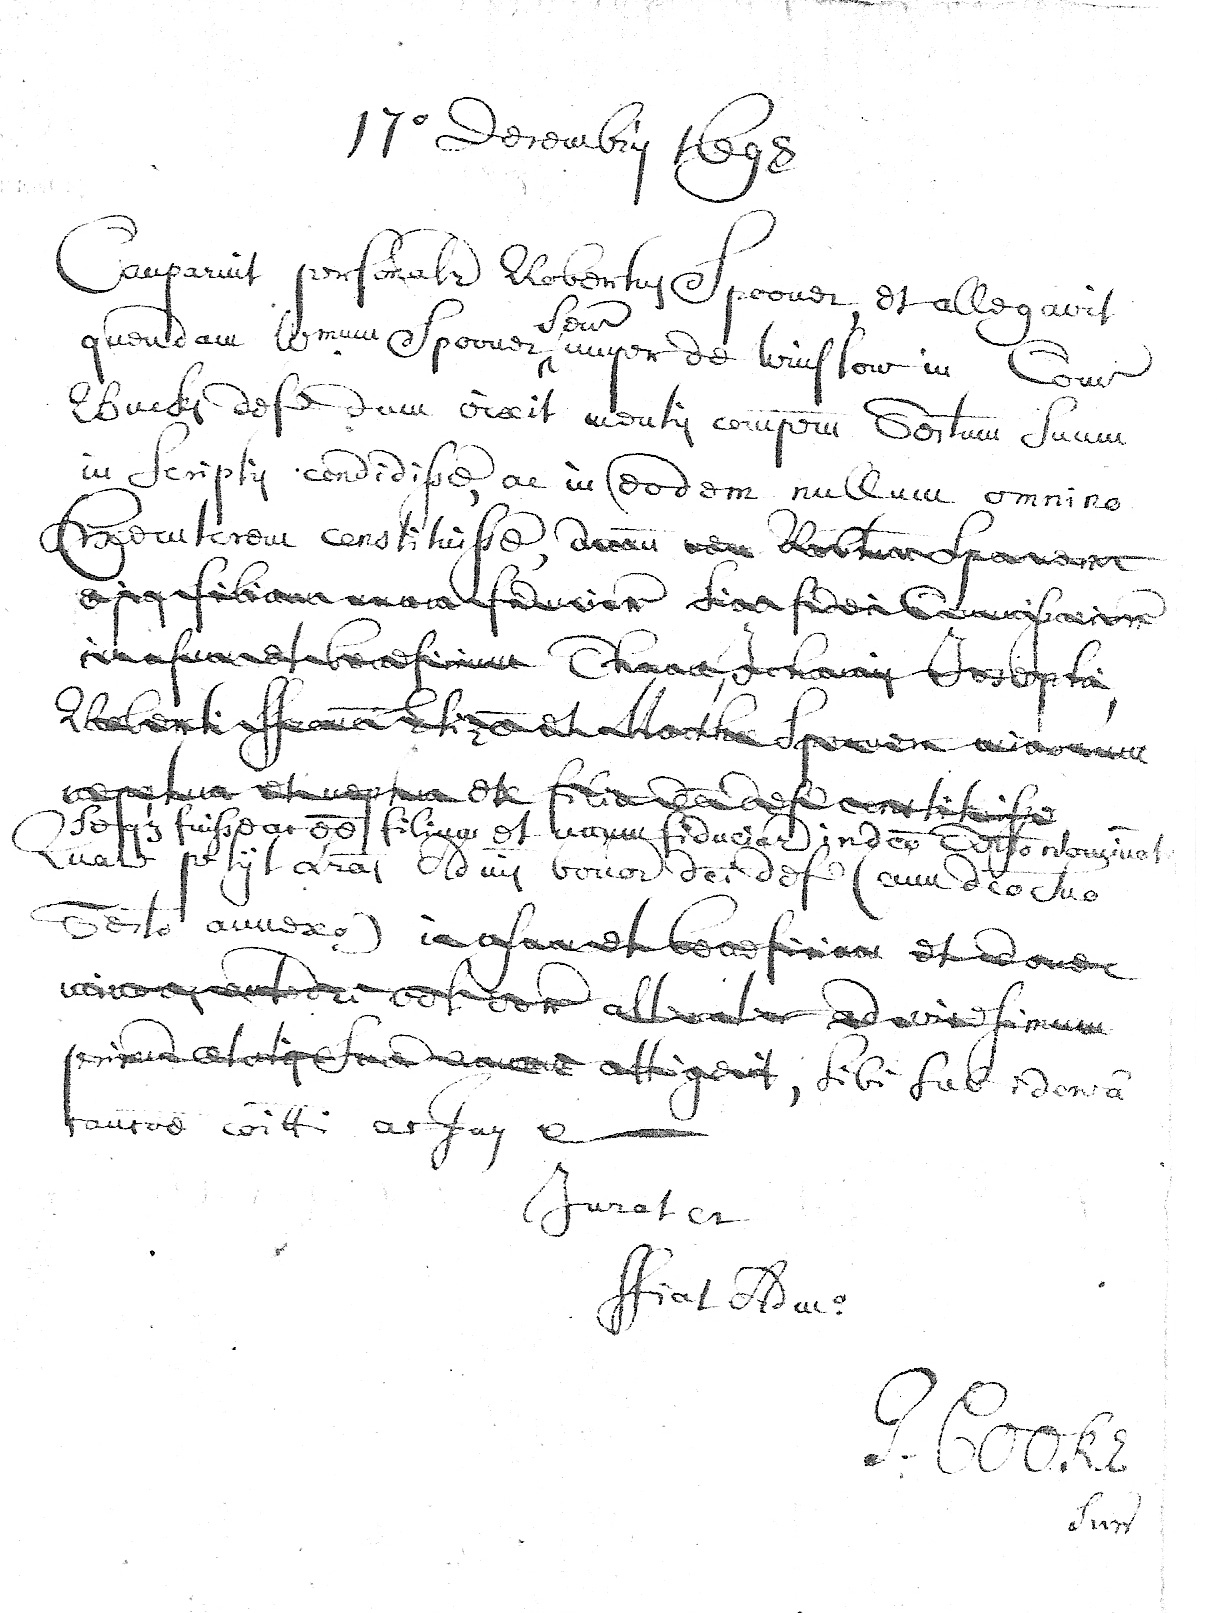 Declaration of Coventry Spooner